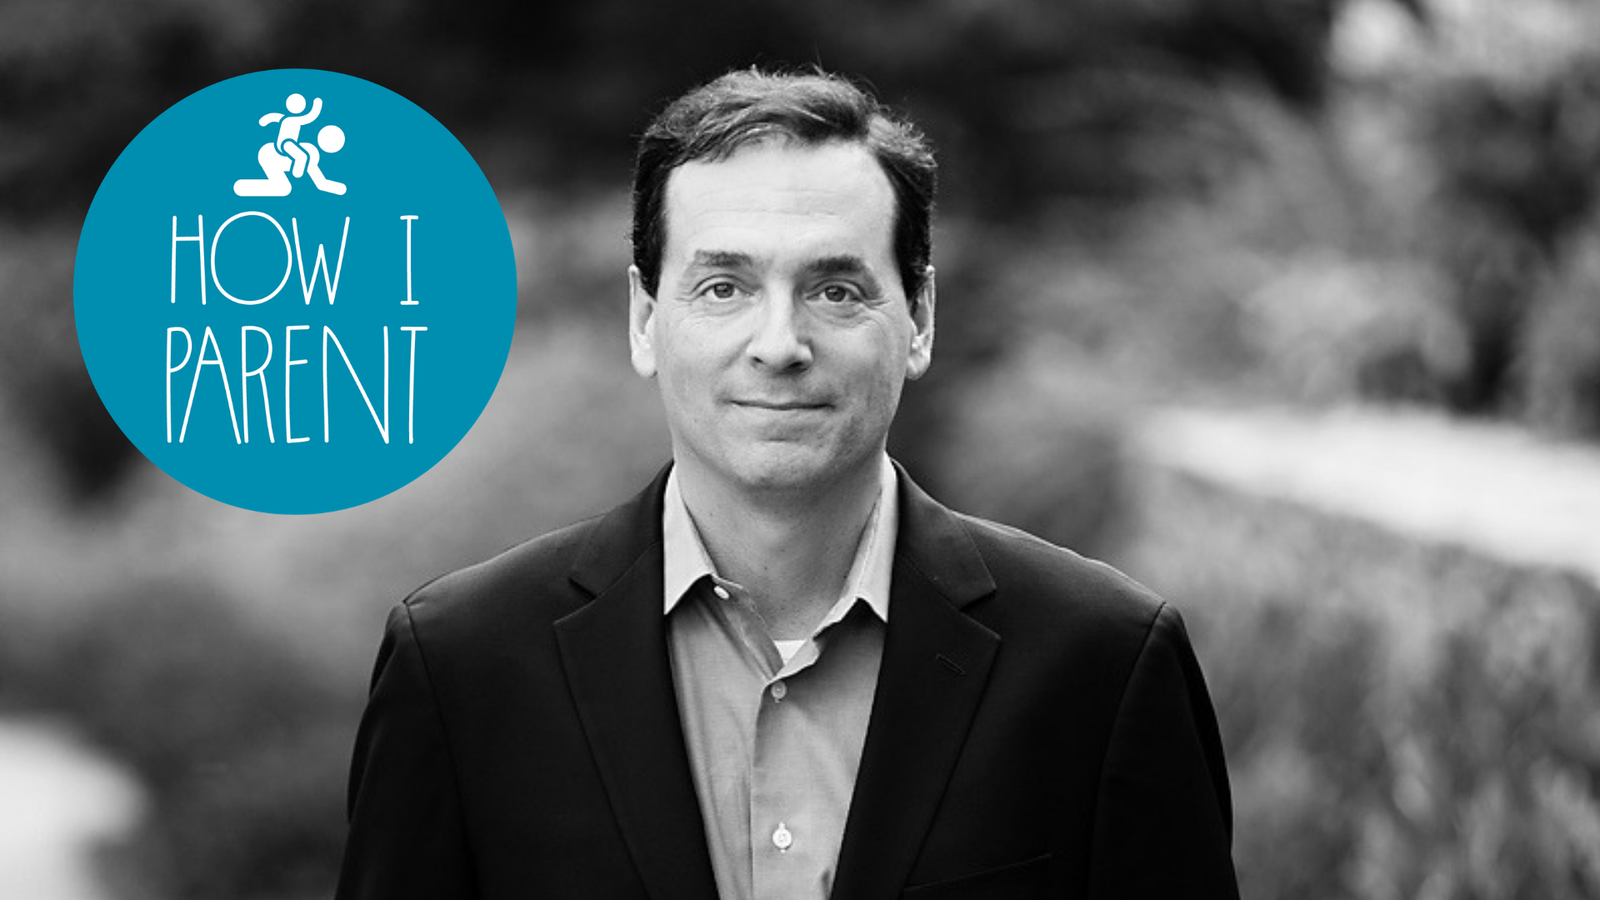 I'm Author Daniel Pink, and This Is How I Parent